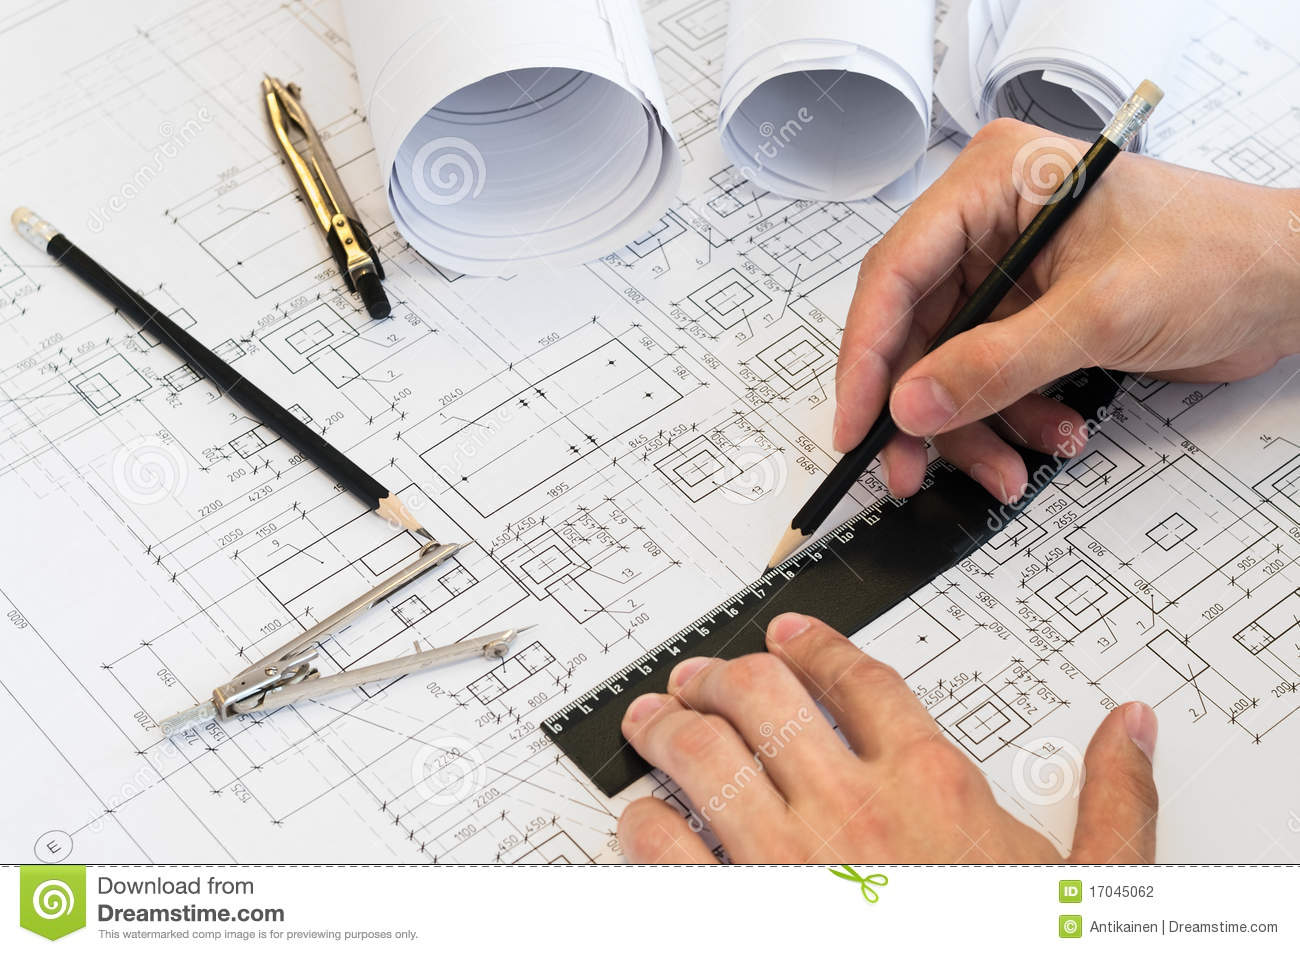 Drawing human ear royalty free stock photography image 25570937 - Human Hands Drawing A Project Stock Photography